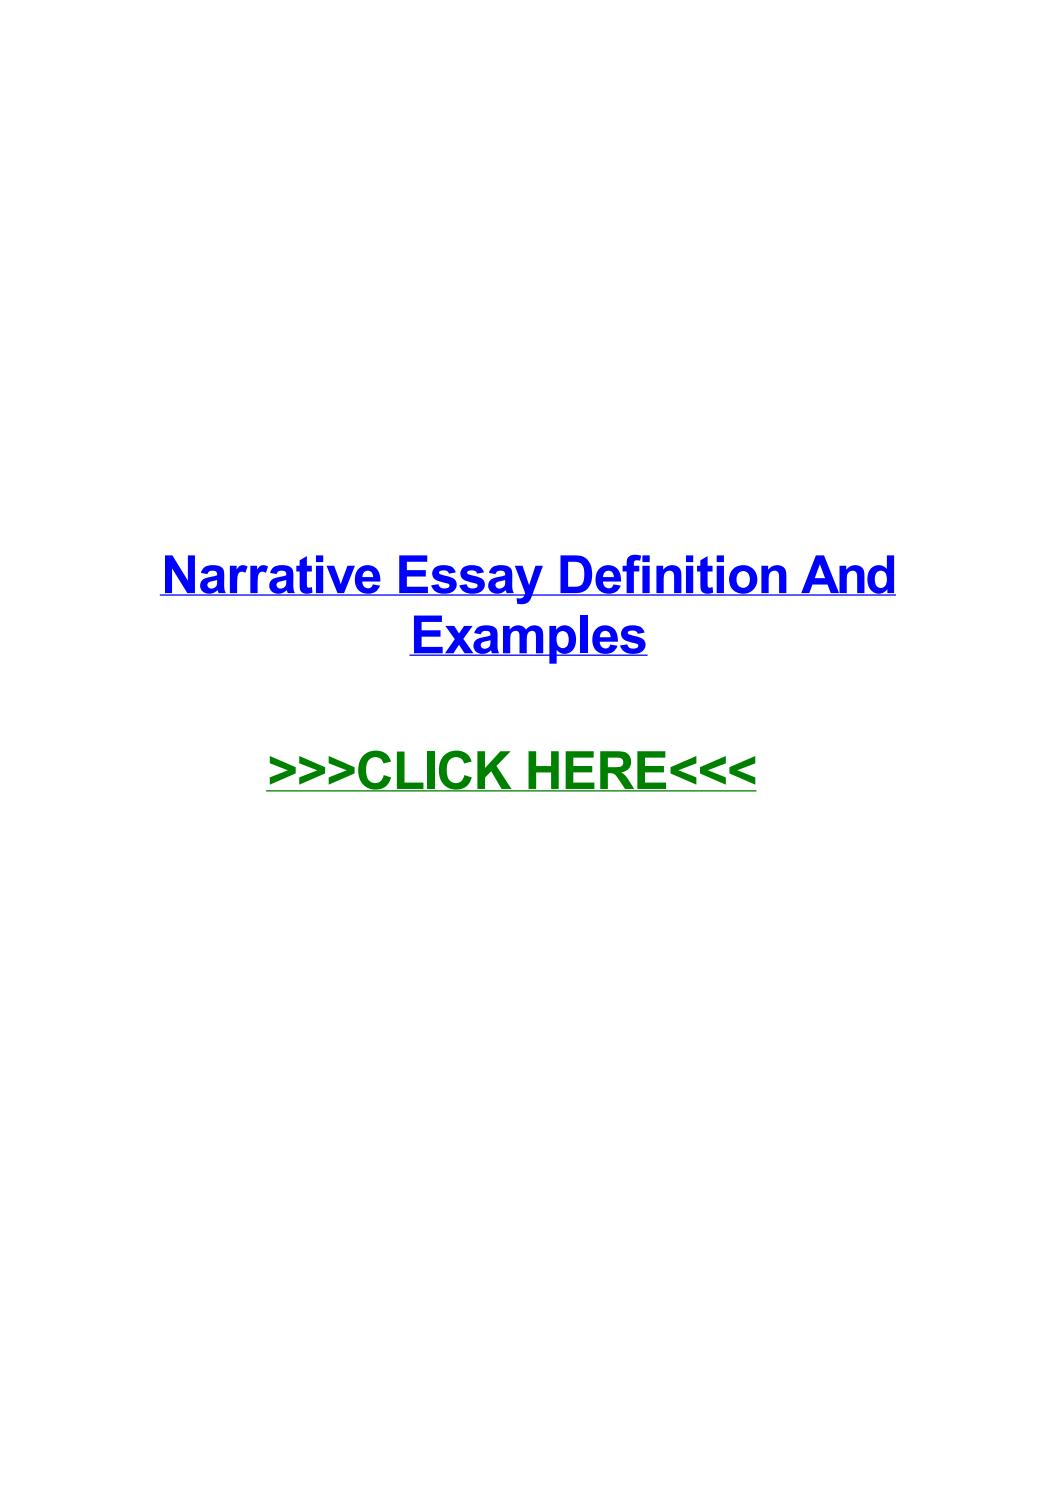 014 Narrative Essay Definition Example Page 1 Stunning Pdf Literature Slideshare Full